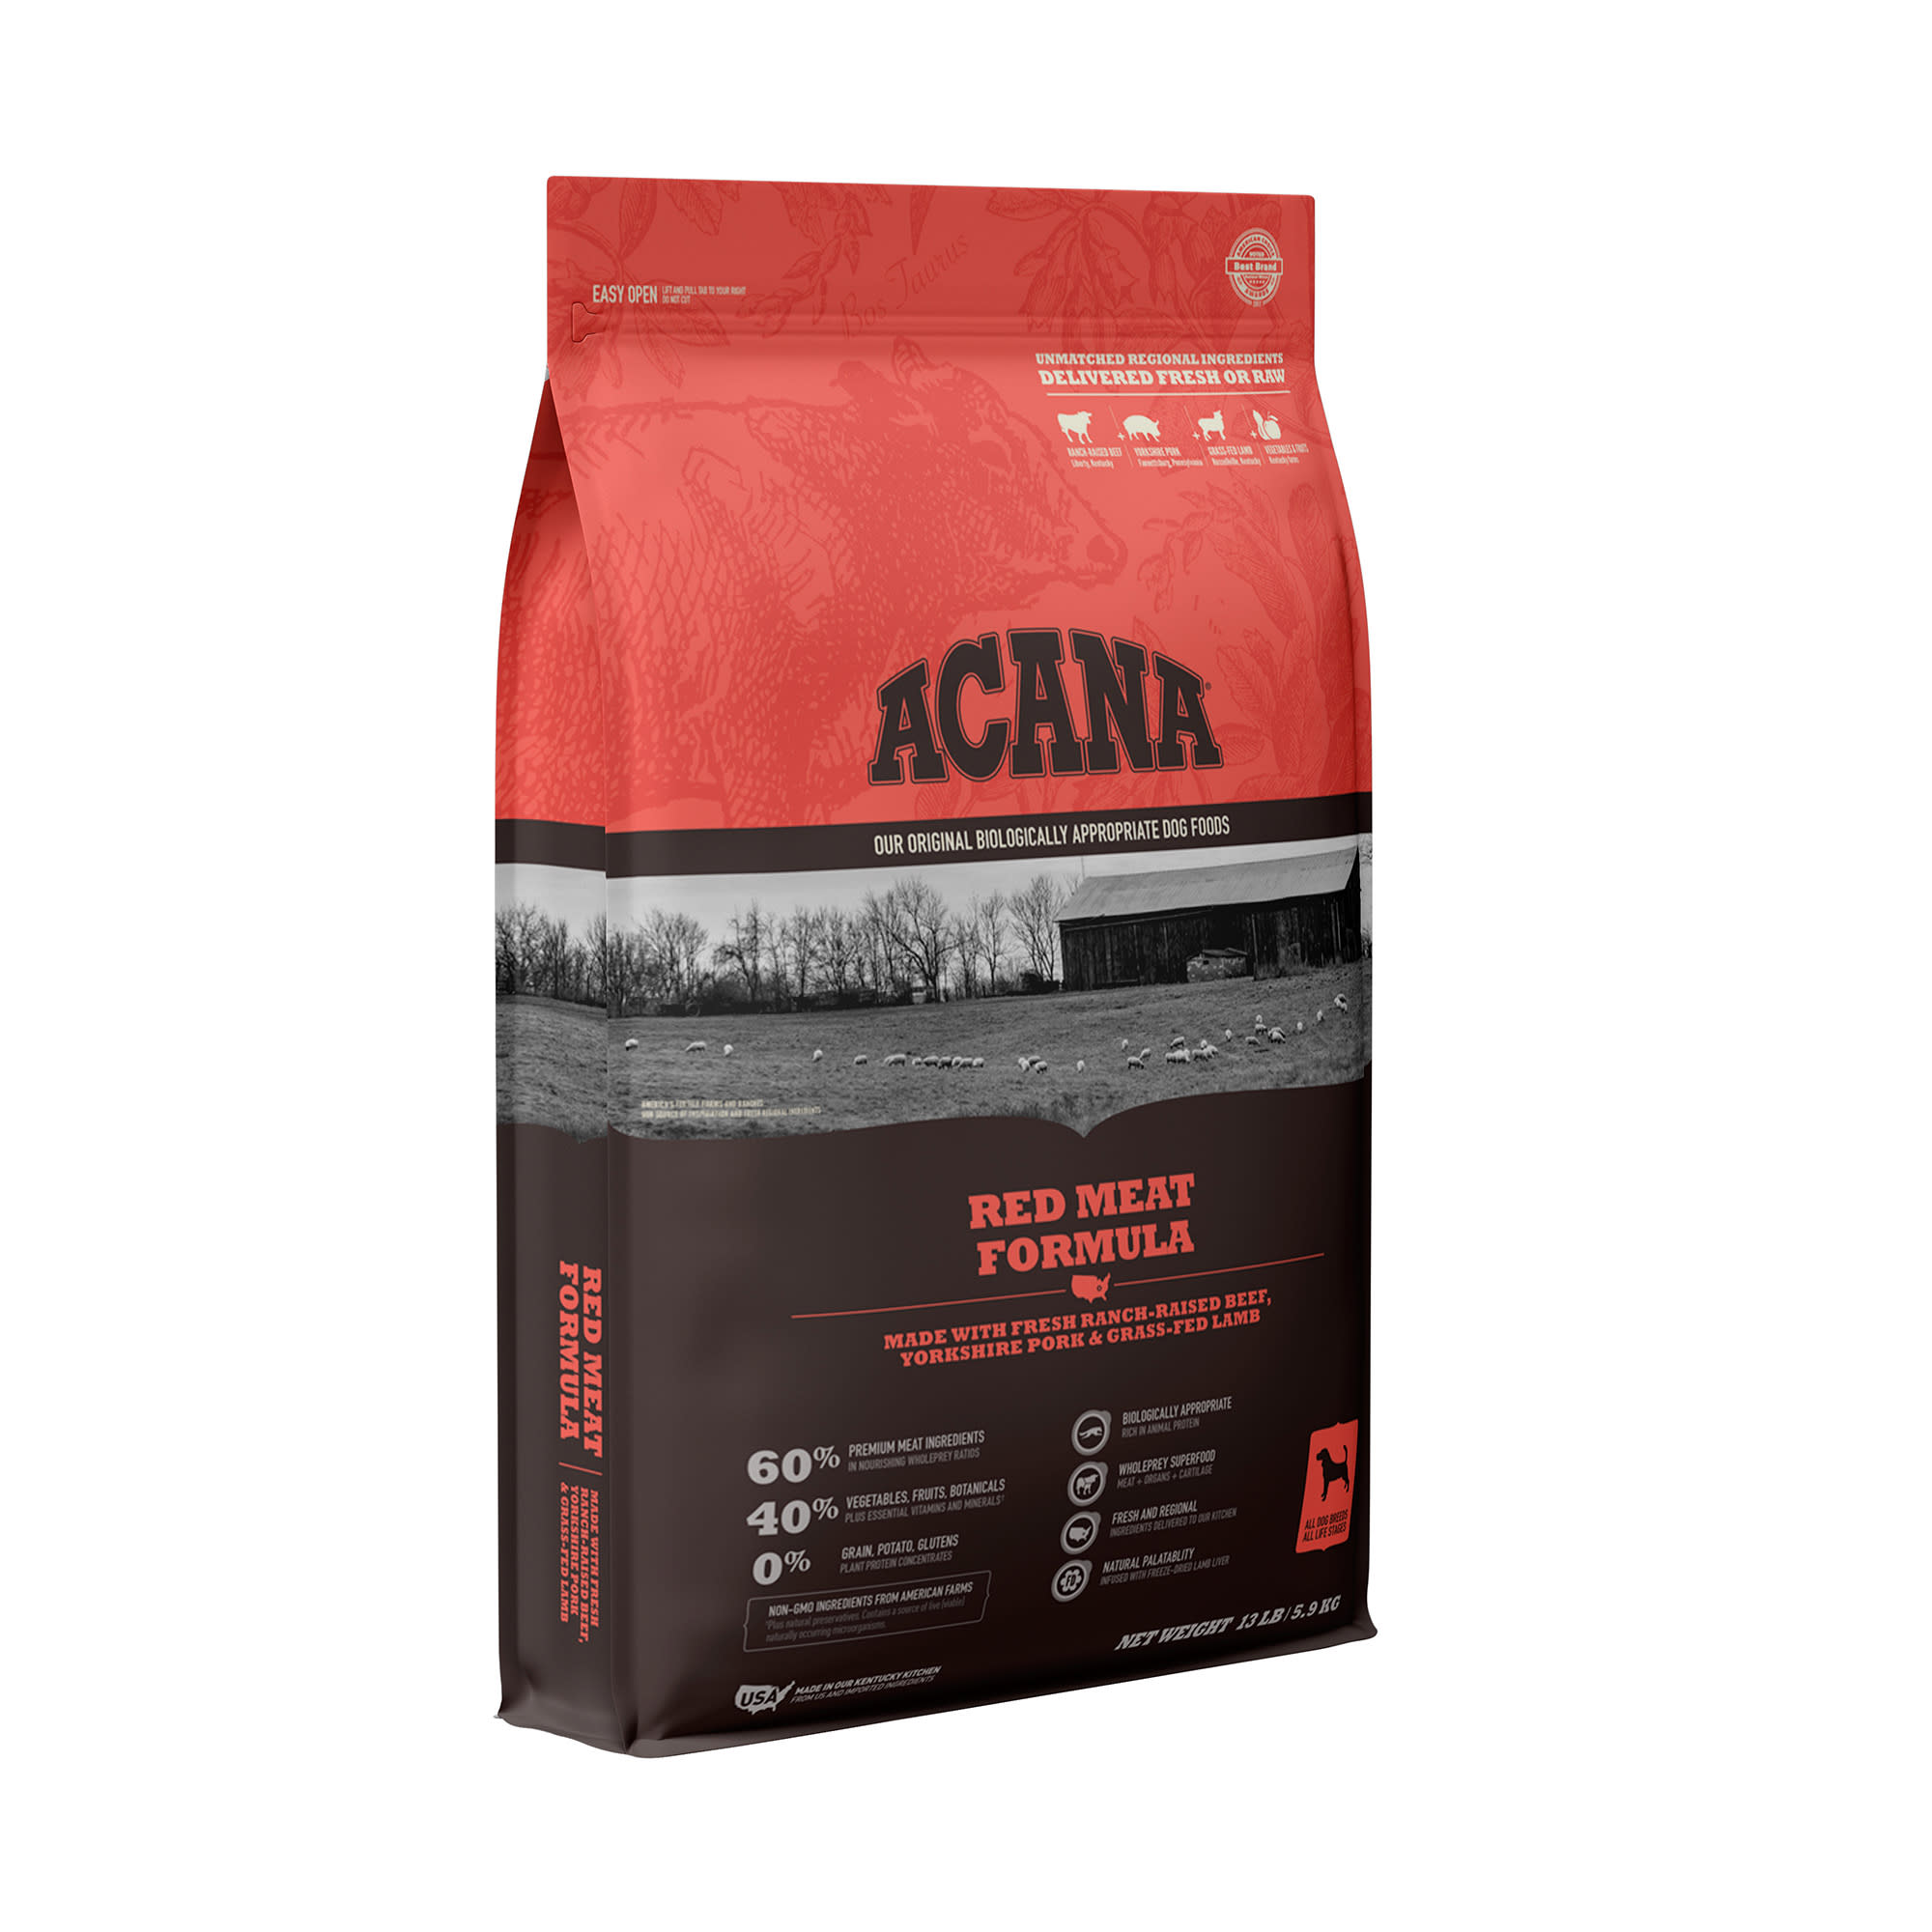 ACANA Grain-Free Red Meat Ranch-Raised Beef Yorkshire Pork Grass-Fed Lamb Dry Dog Food, 13 lbs.